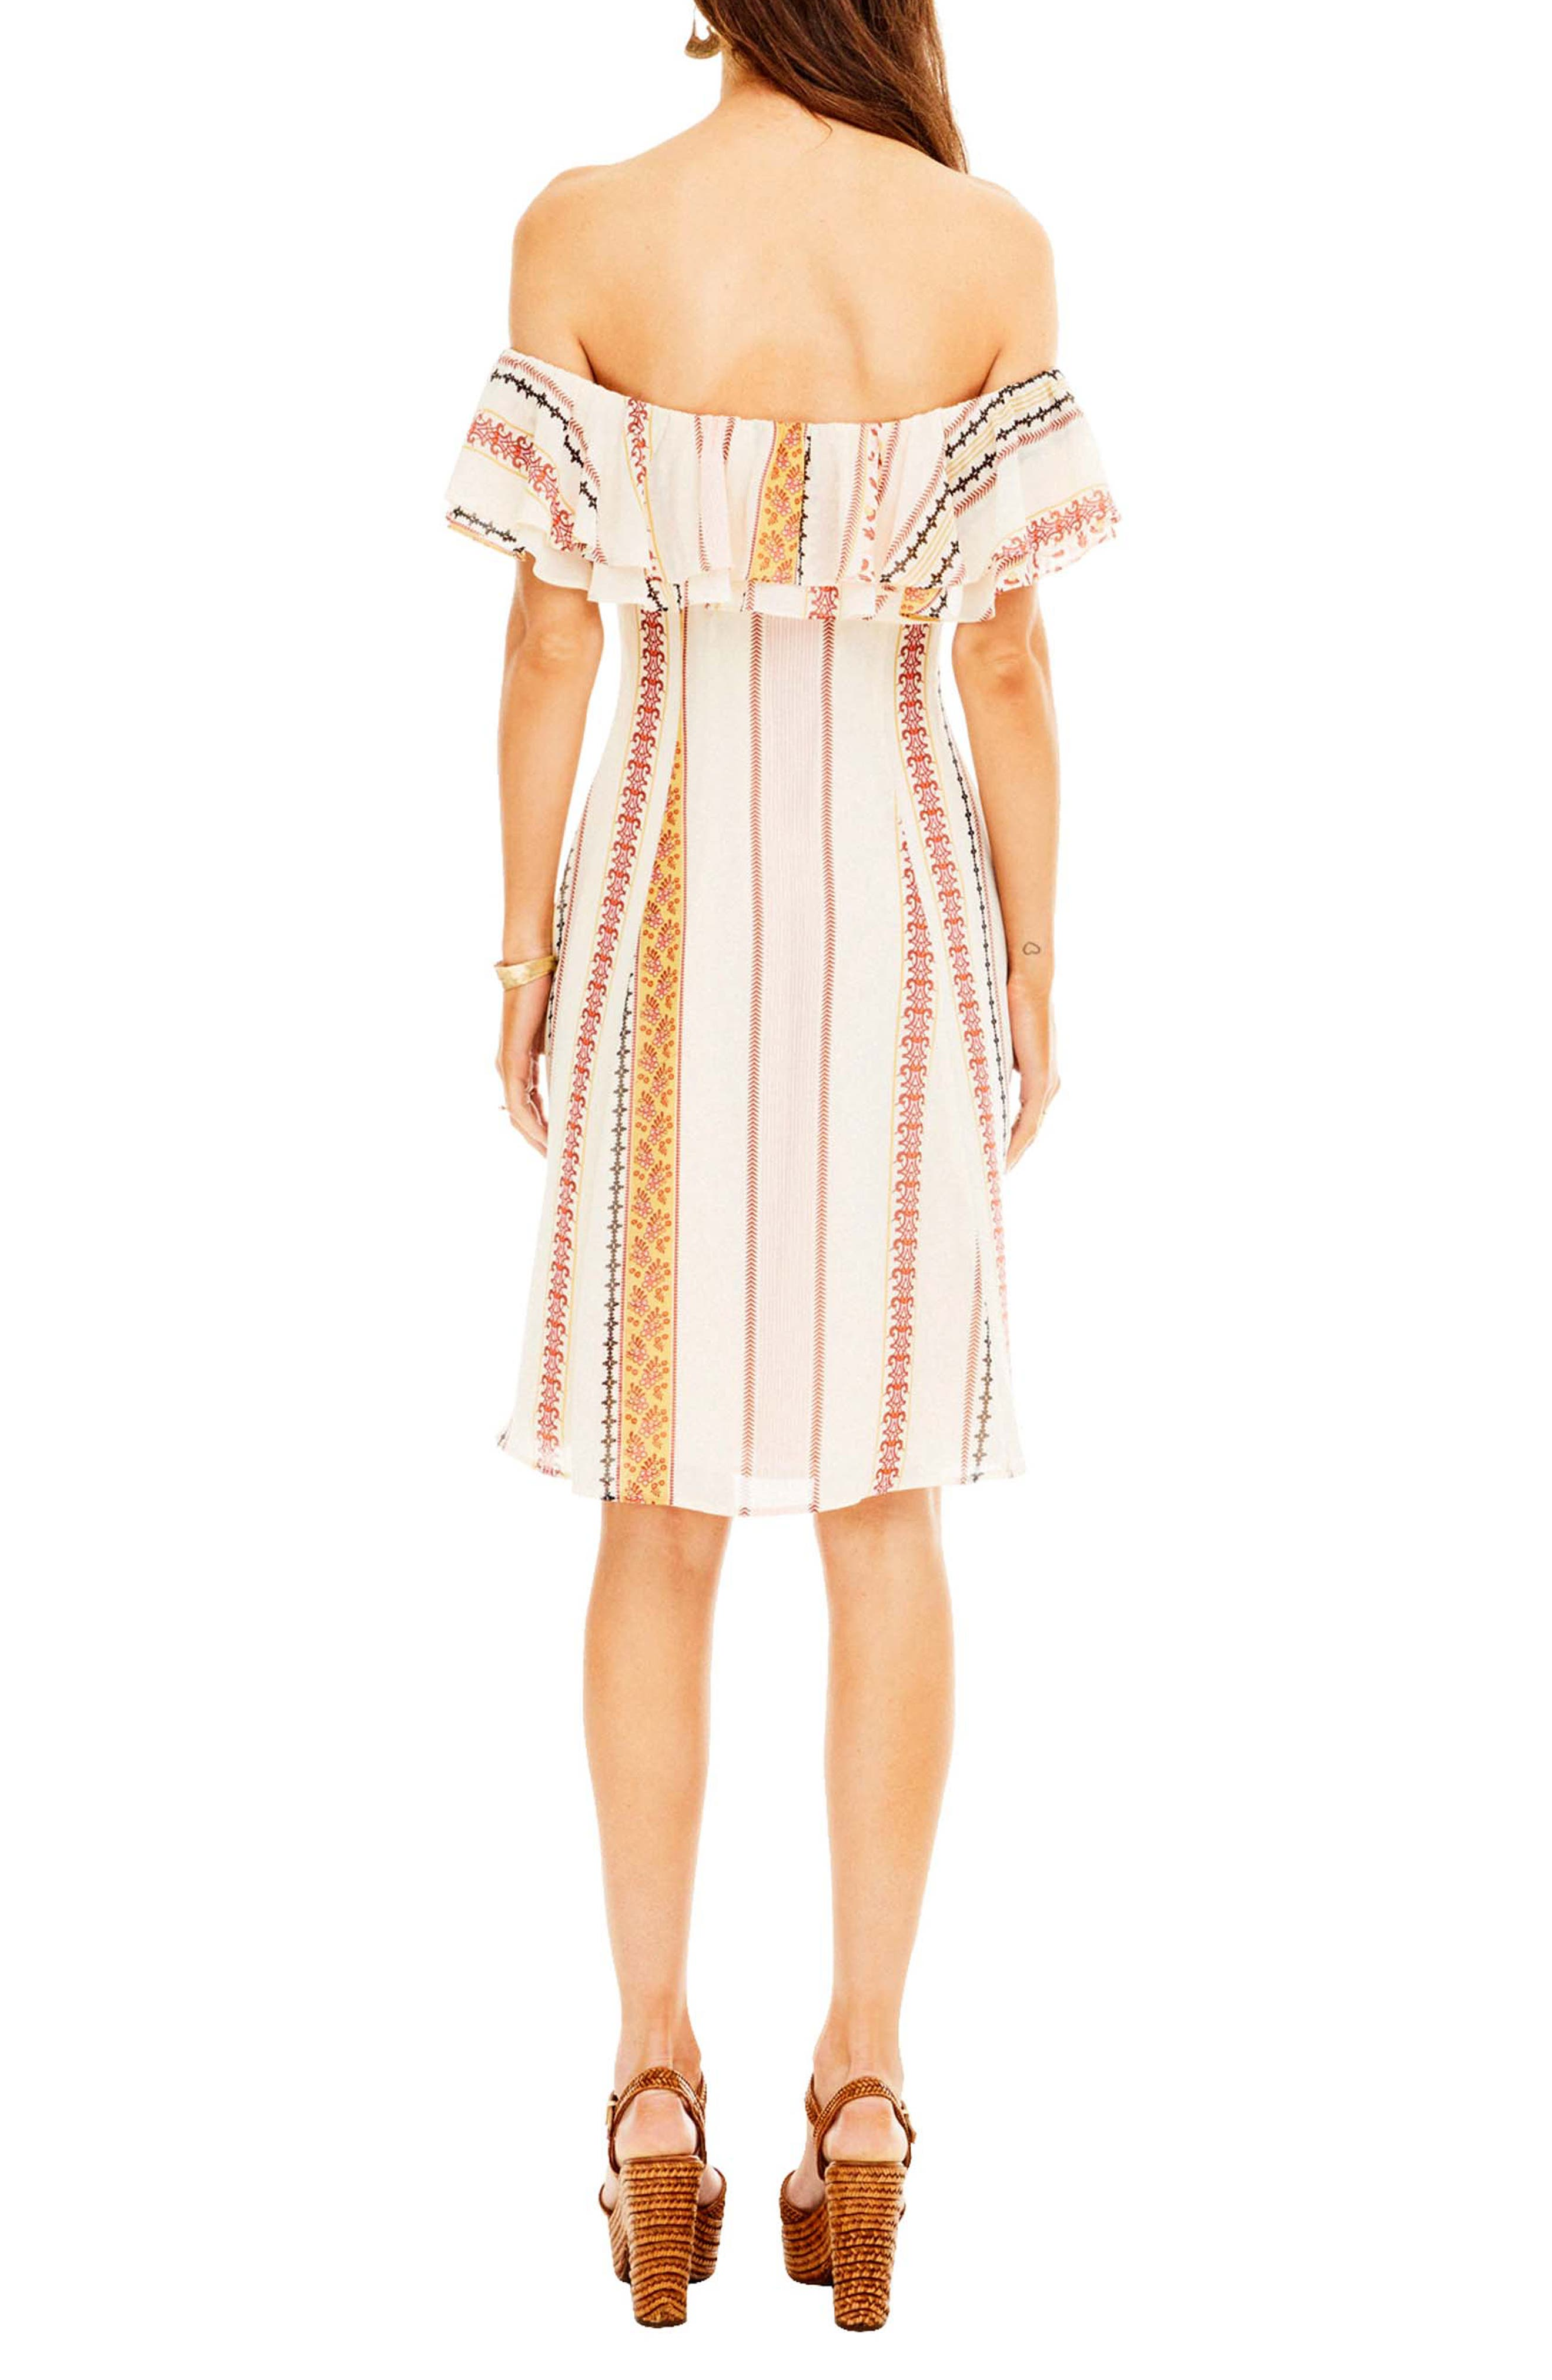 Cassidy Dress,                             Alternate thumbnail 2, color,                             Cream Floral Stripe